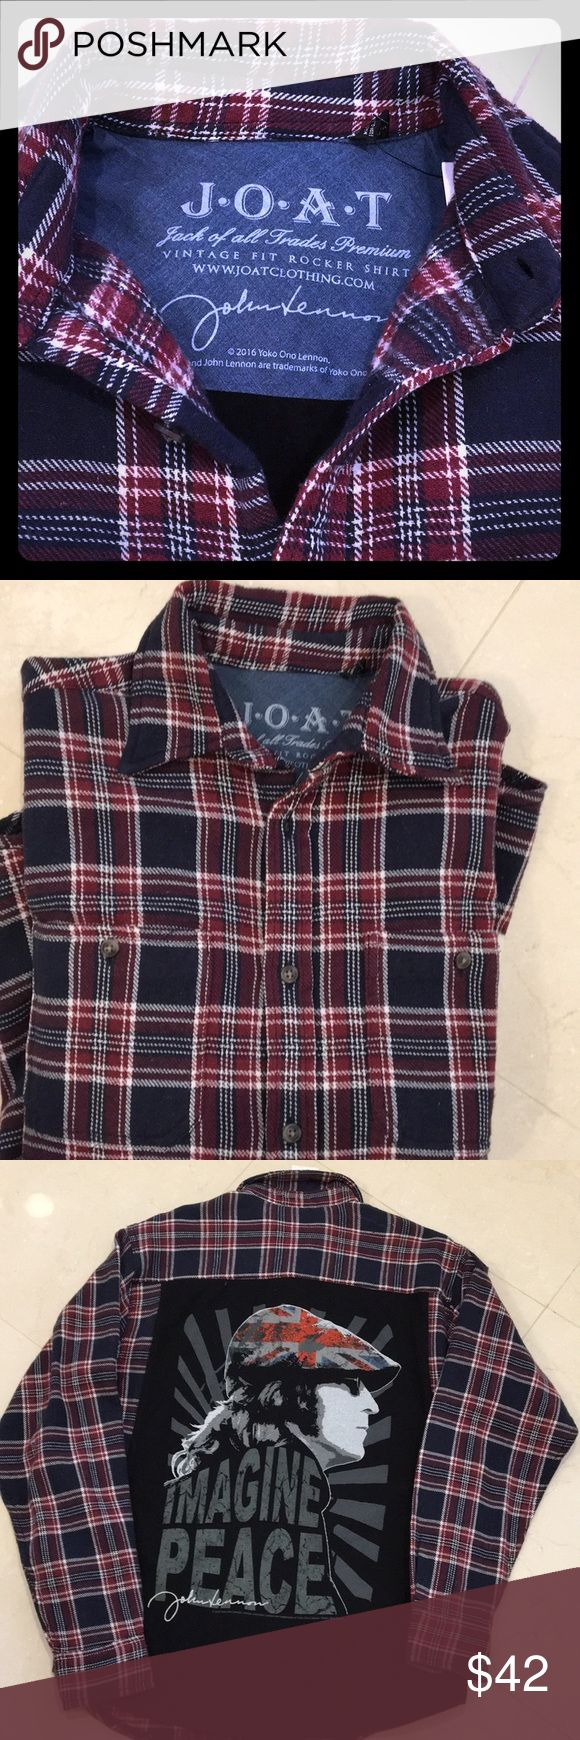 Jack of all Trades Premium flannel shirt Jack of all Trades Premium vintage fit rocker shirt, John Lennon men's flannel shirt, red/navy plaid, new with tag, purchased at Neiman Marcus Jack of all Trades Tops